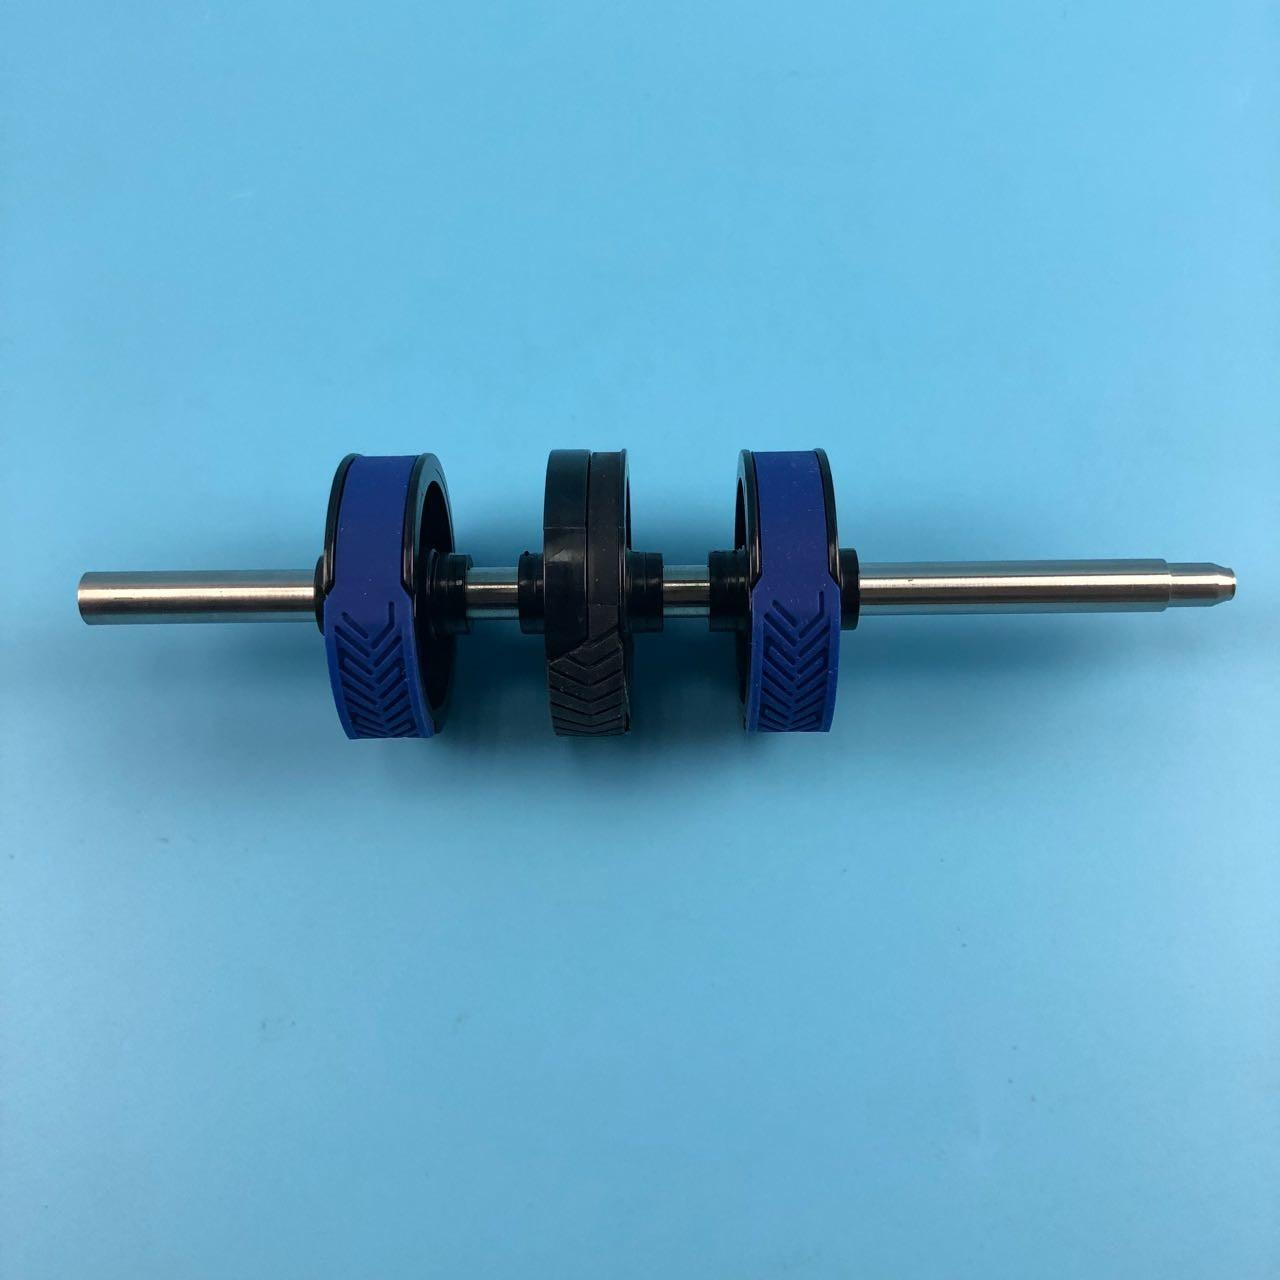 China ATM Parts Original New Diebold Spare Parts Diebold Feed Shaft 49009303000B With High Stability 49-009303-000B factory